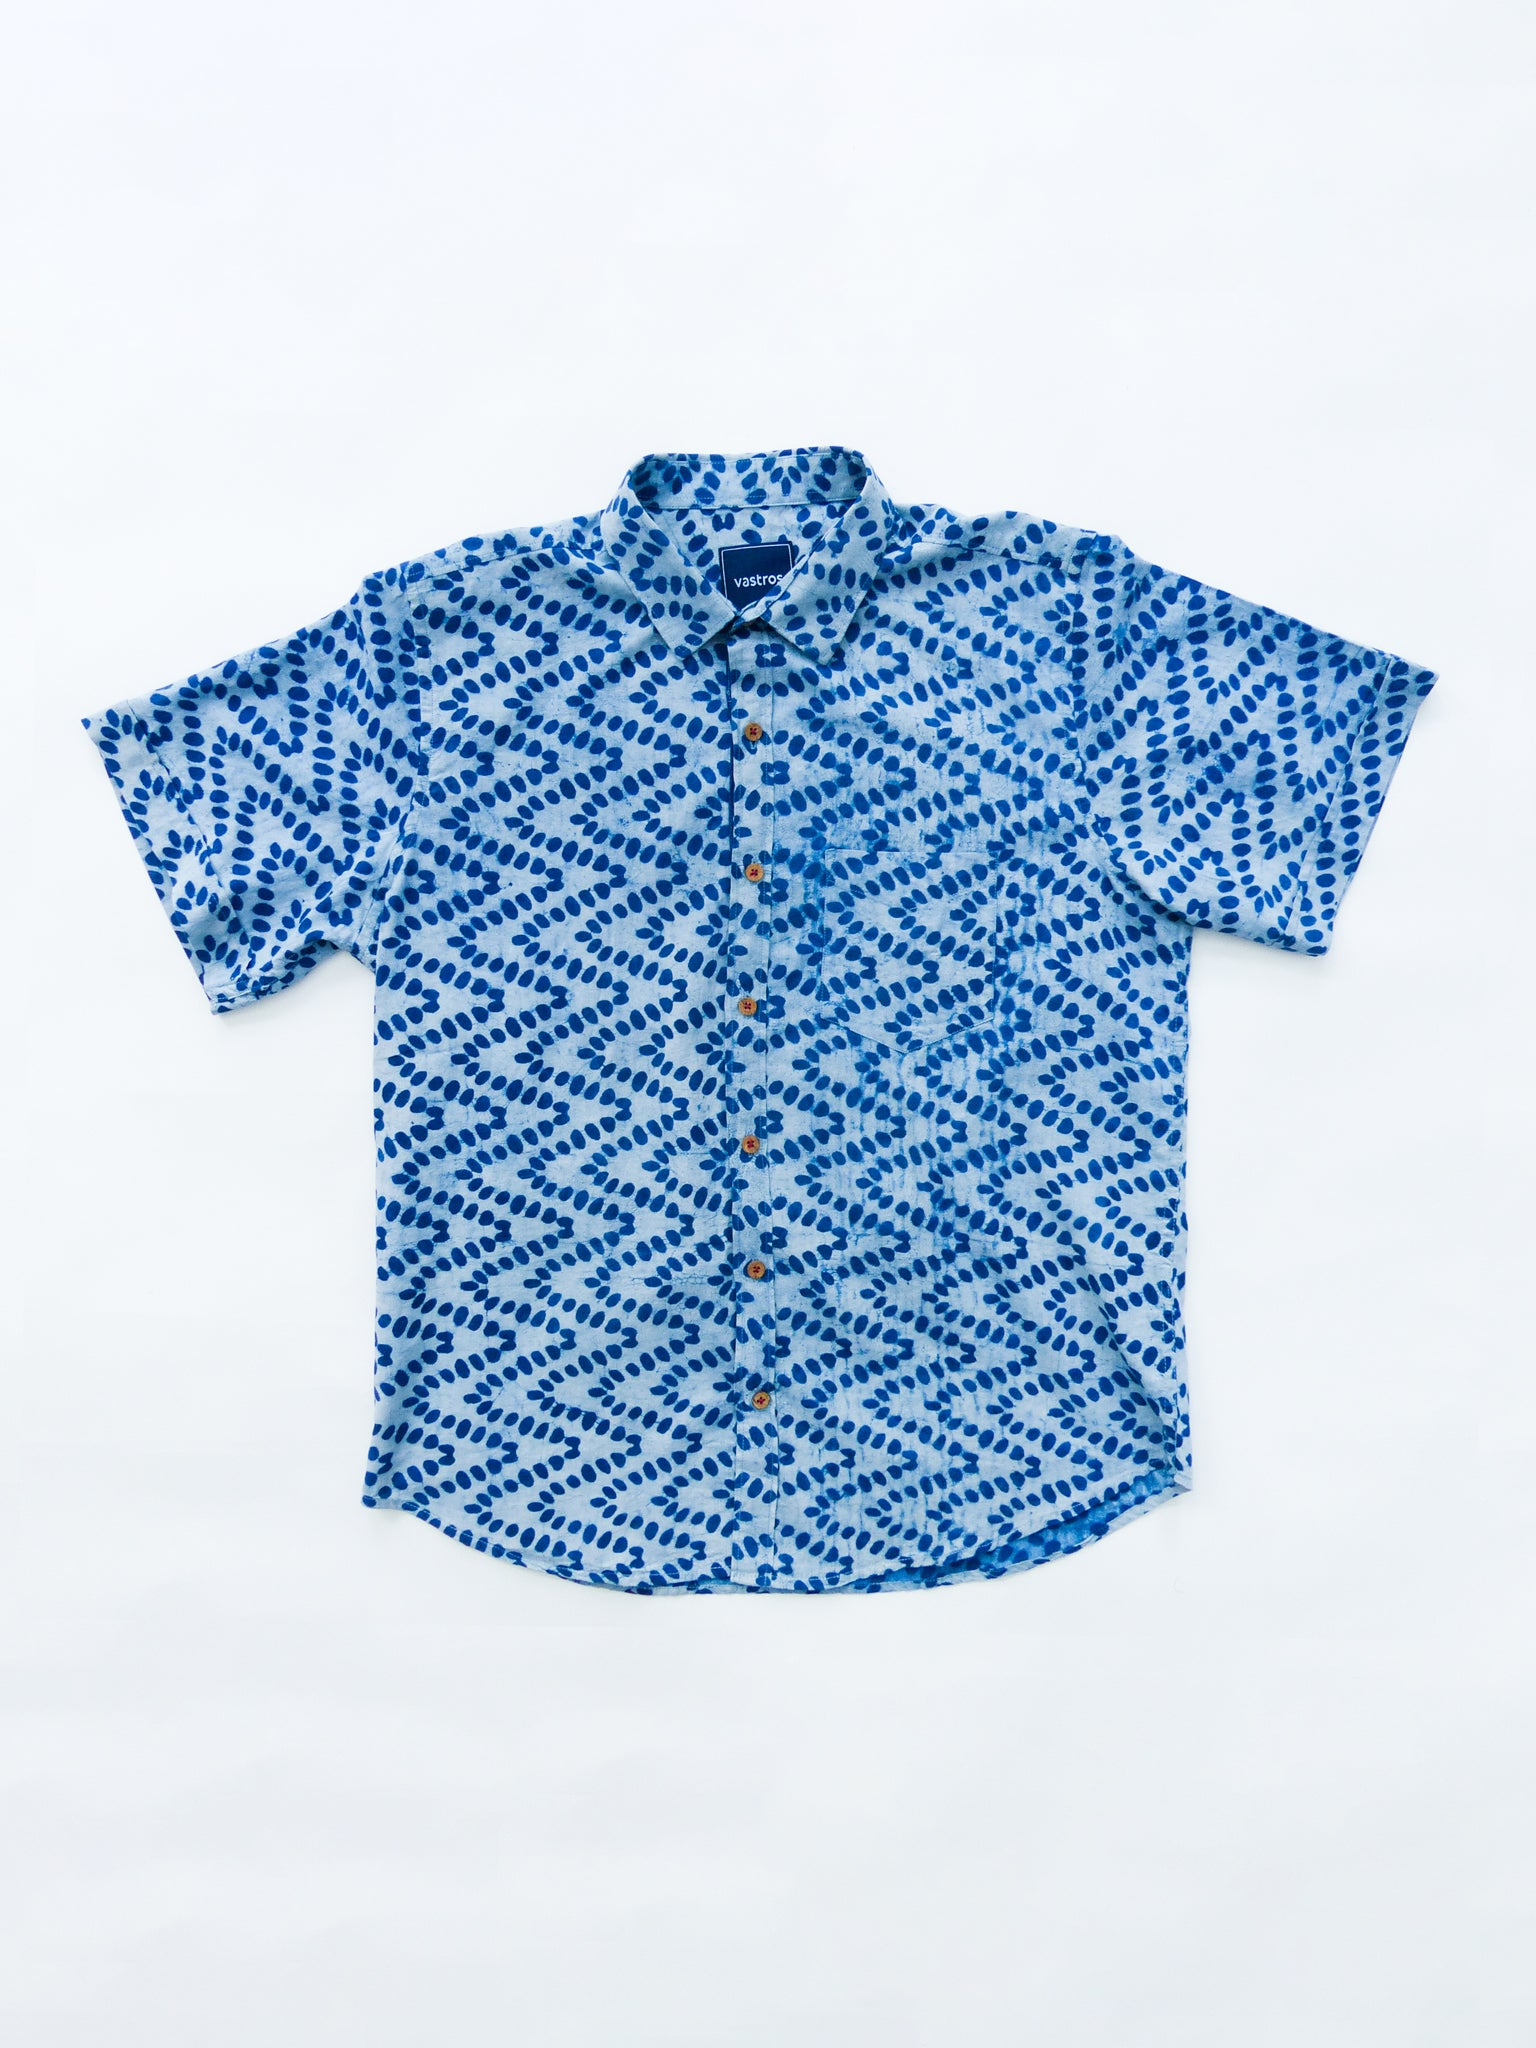 indigo leaves shirt image flat